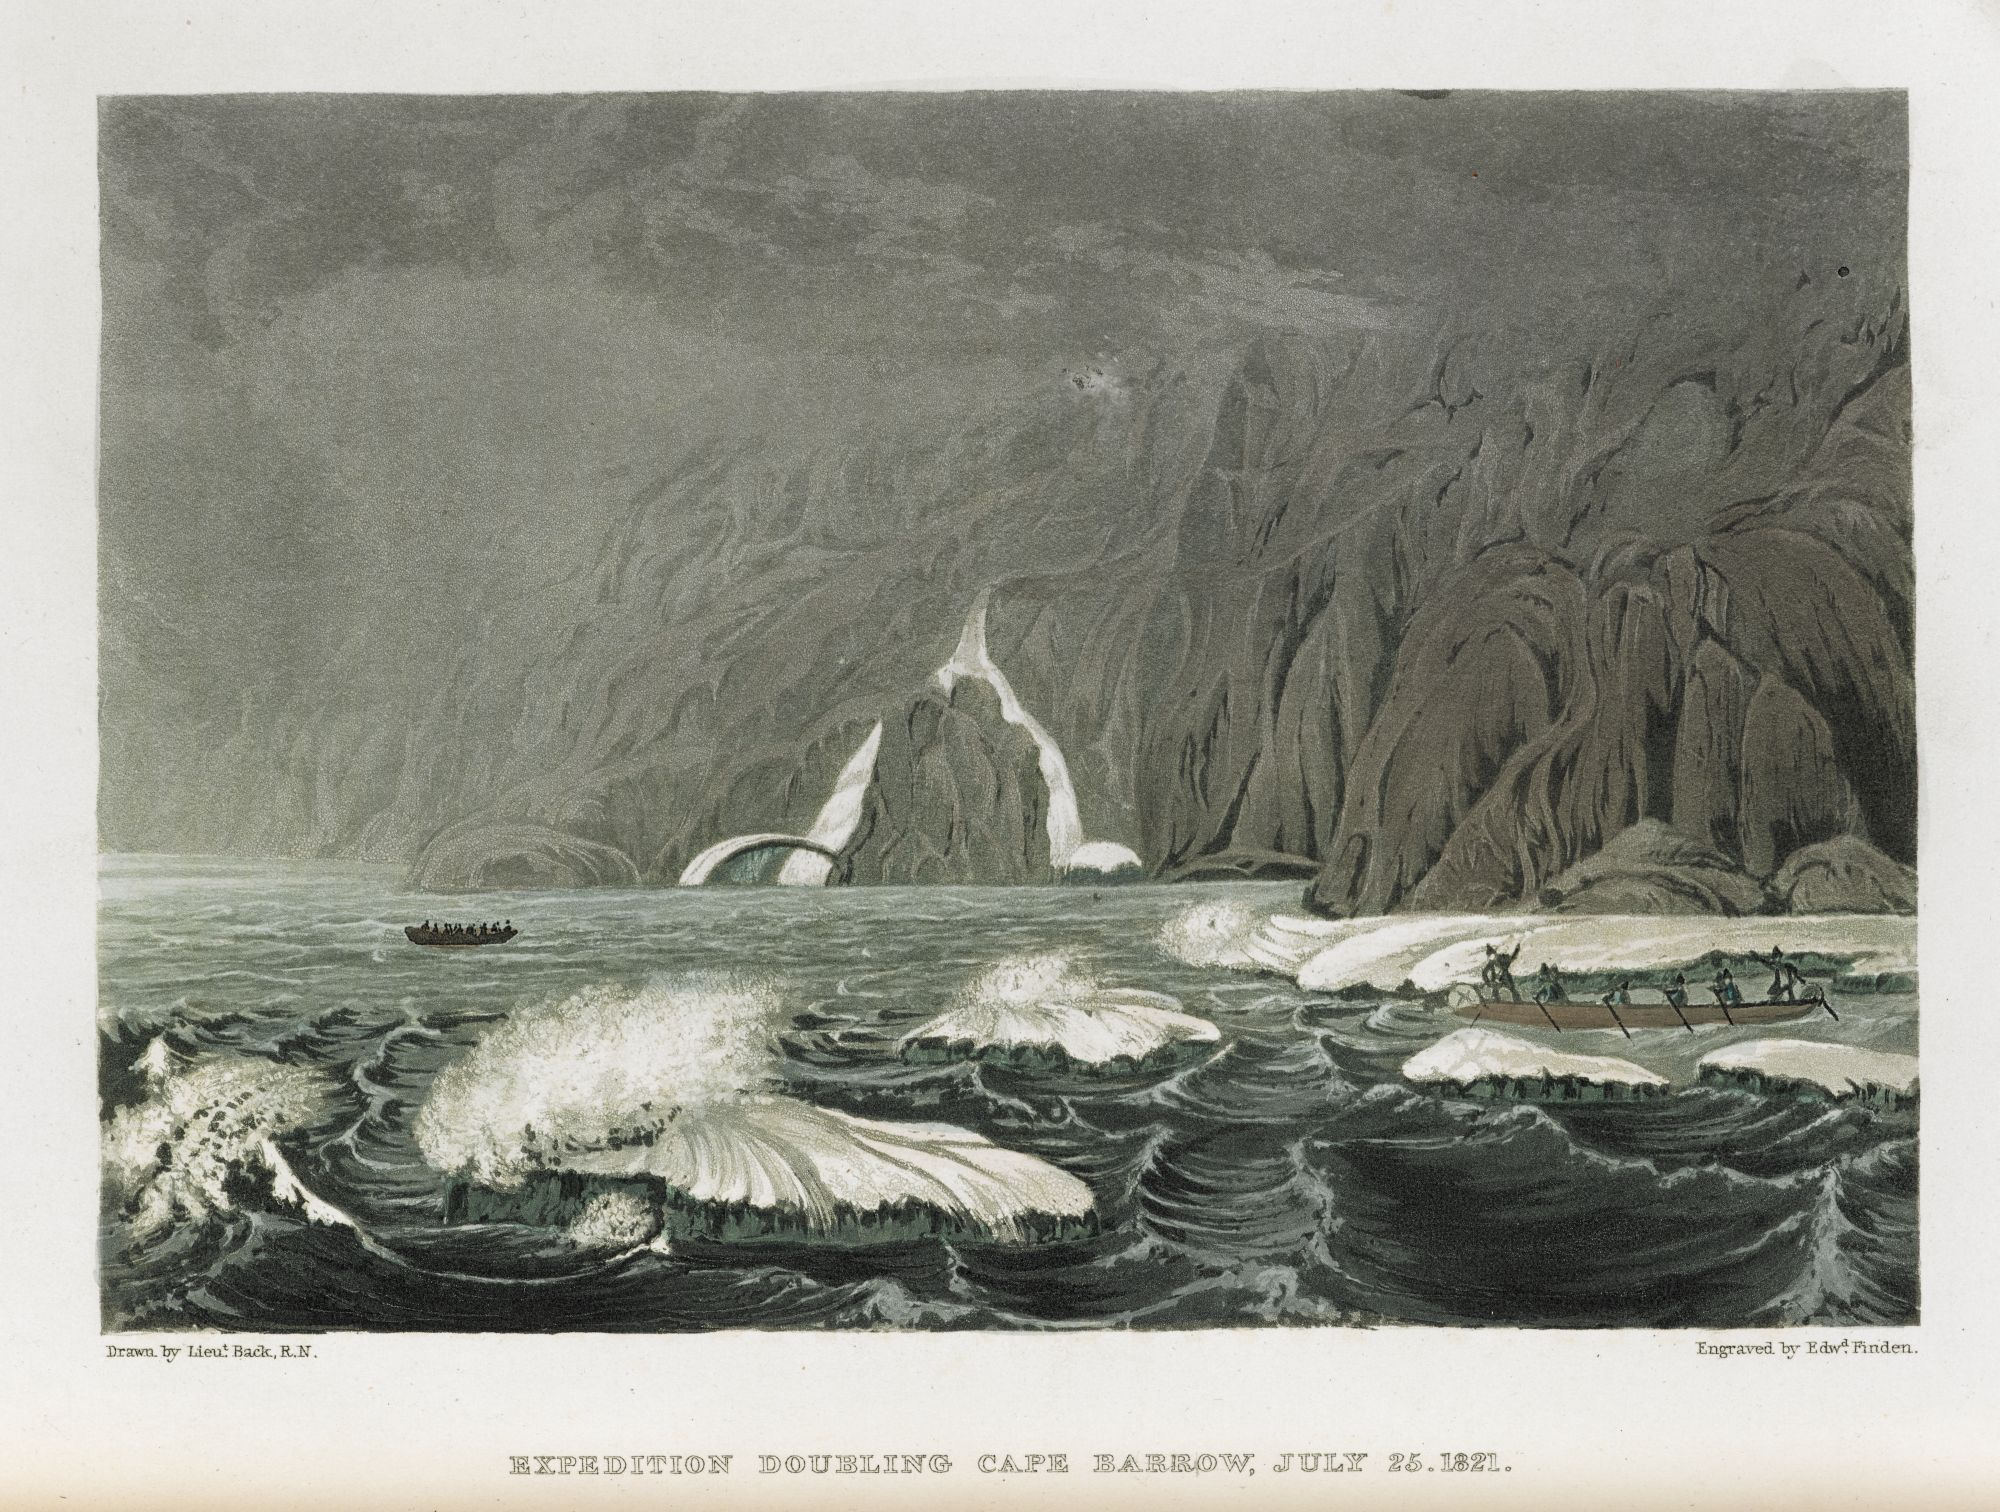 Expedition doubling Cape Barrow, by Edward Finden after George Back.